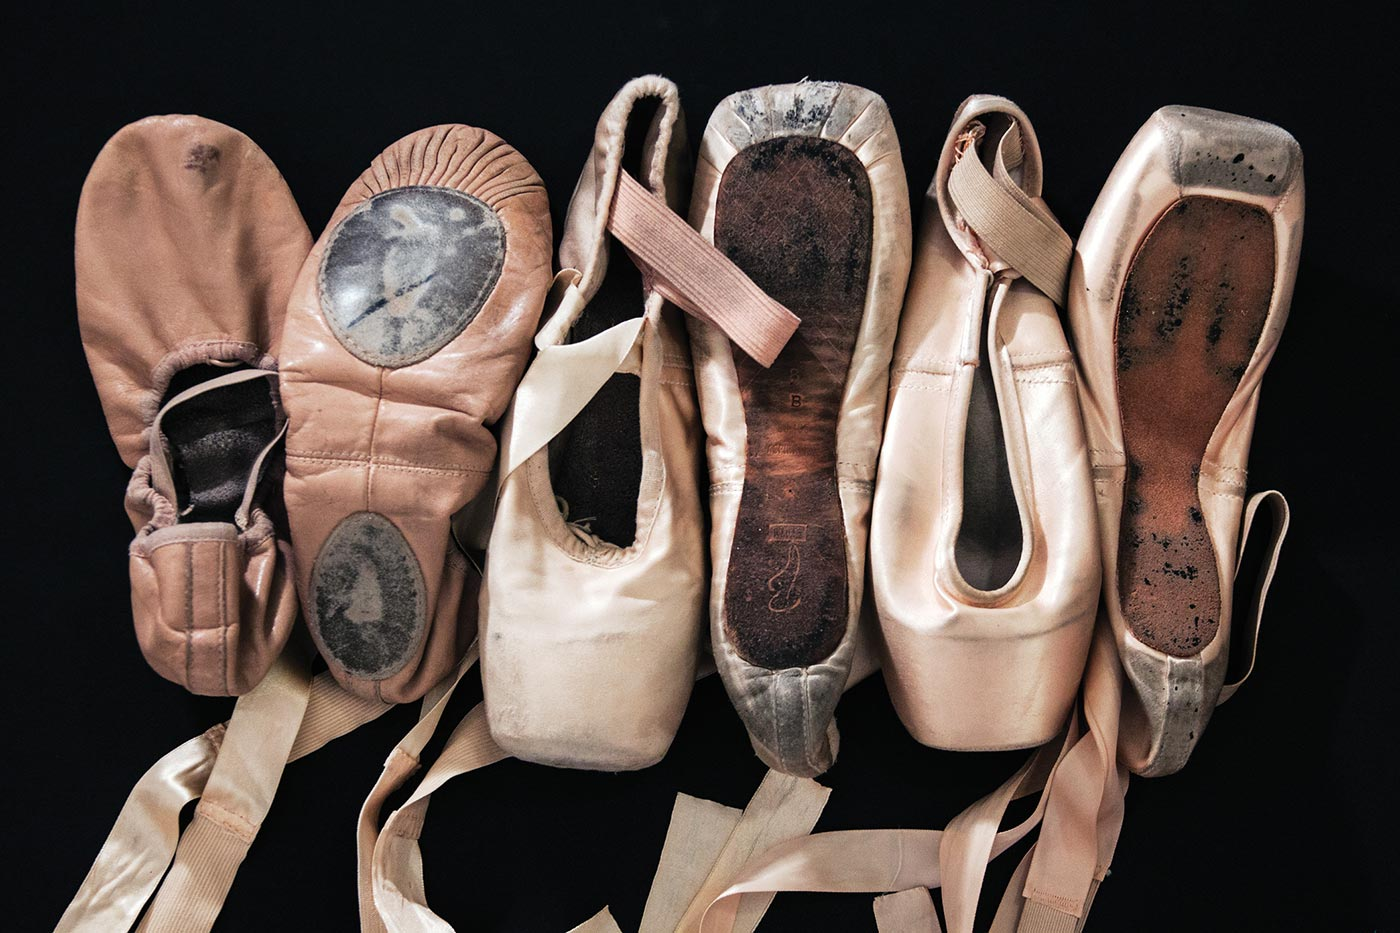 Stephanie Marzan